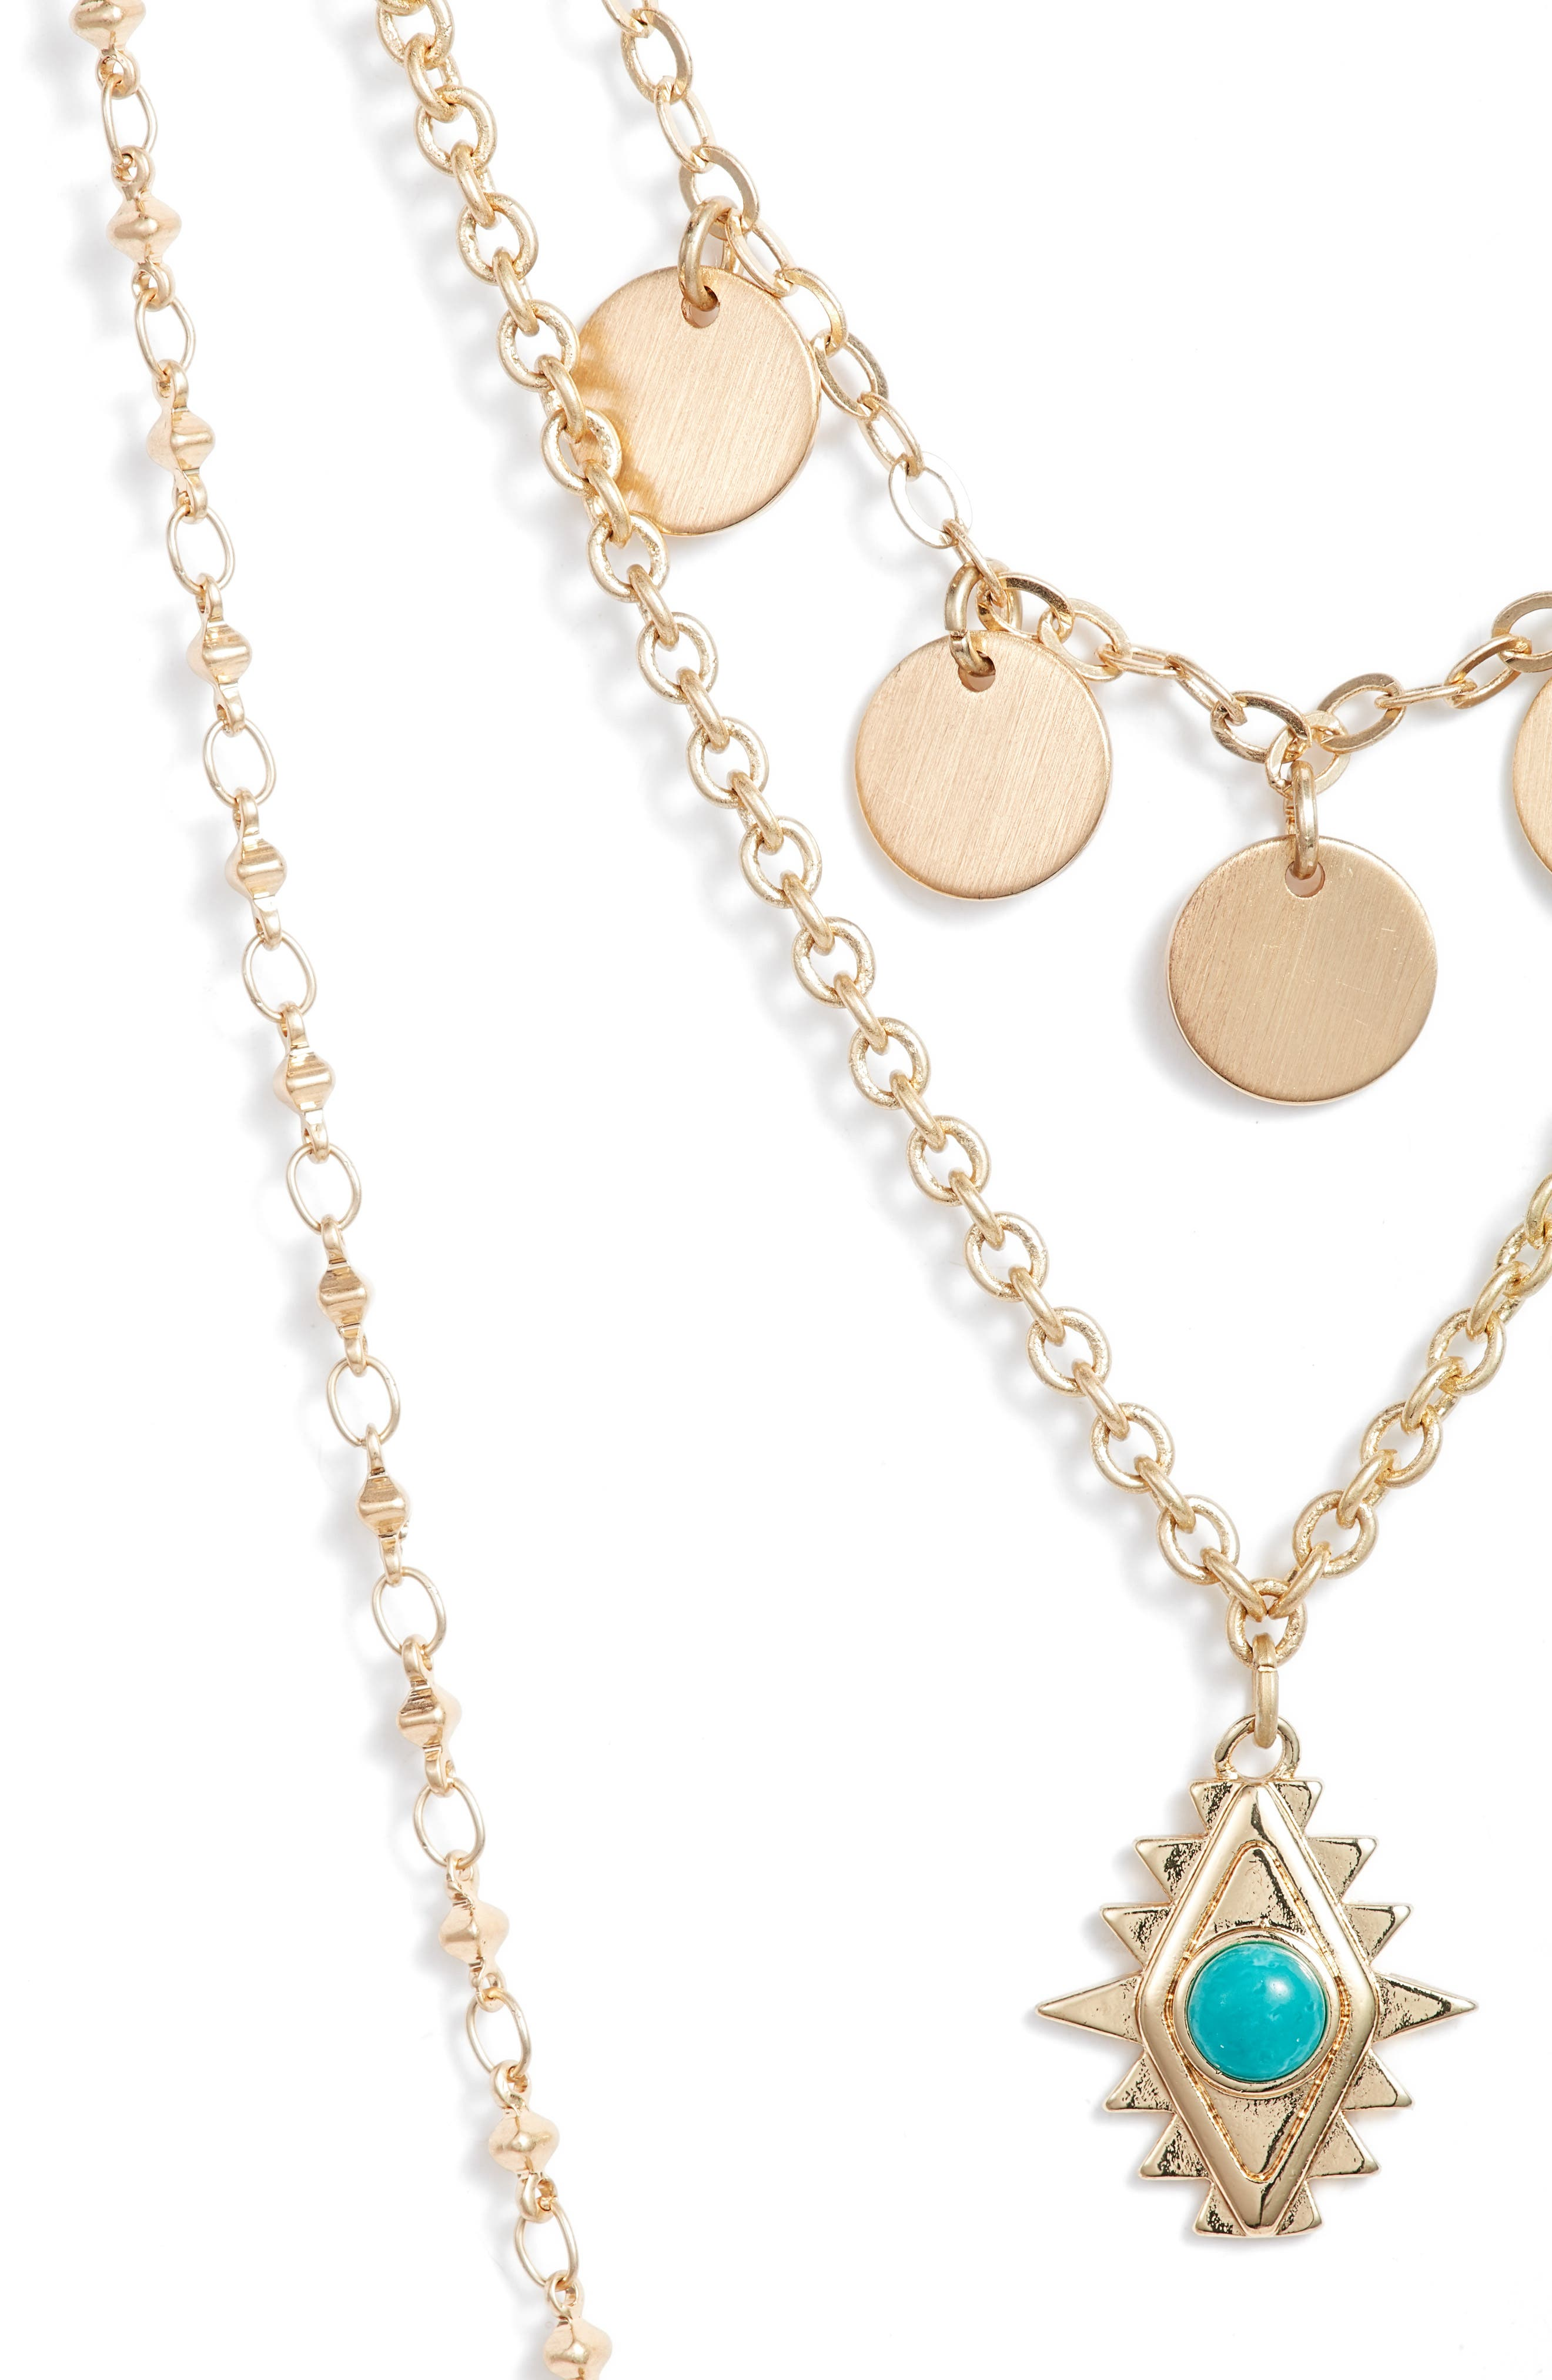 Triple Layer Charm Necklace,                             Alternate thumbnail 2, color,                             Gold